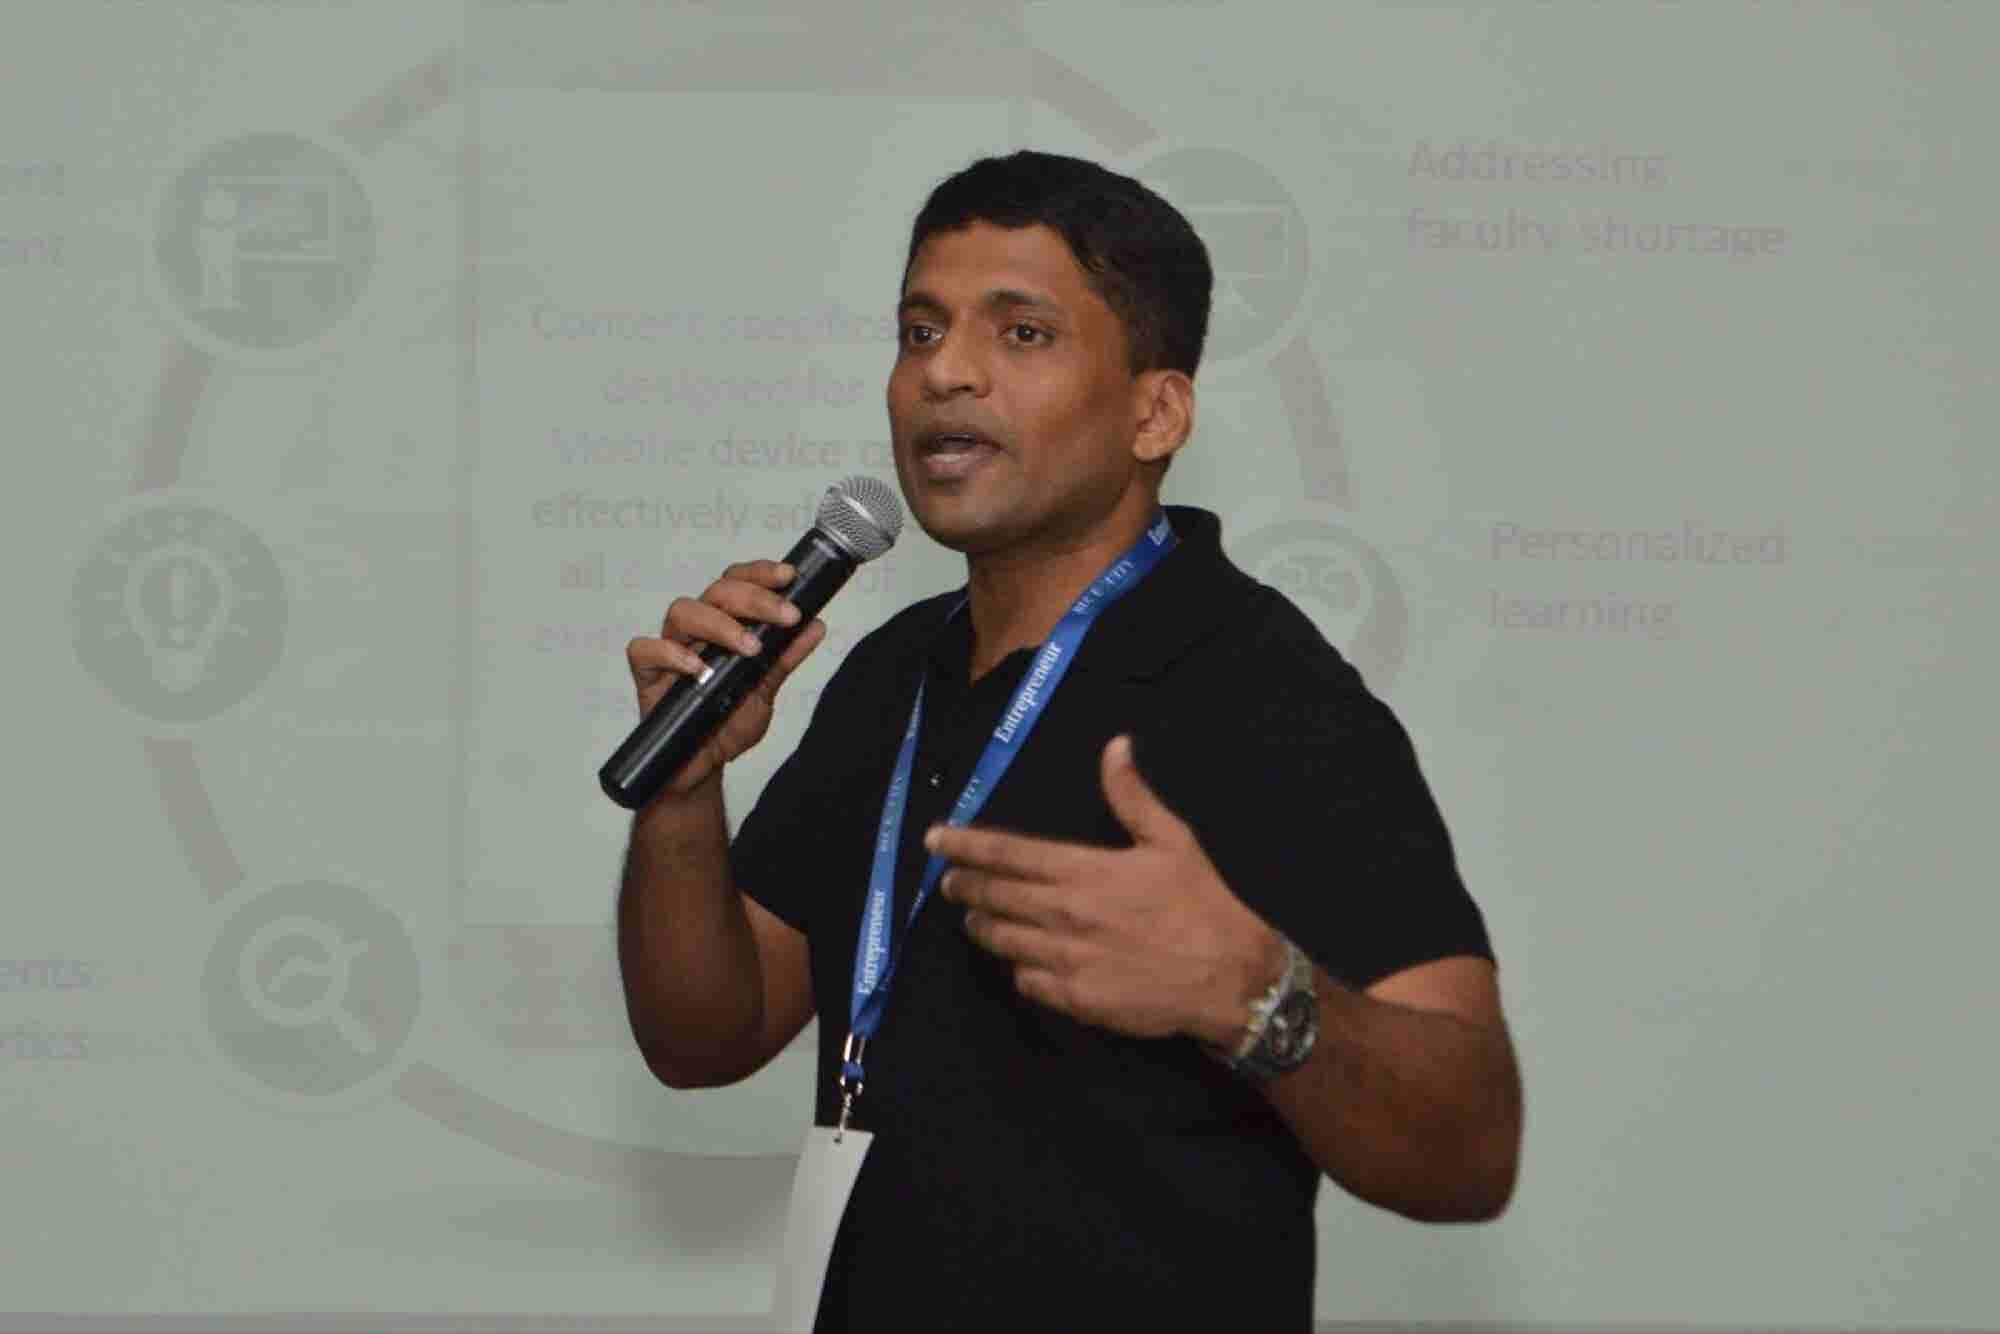 Byju Scoops Out $50 Million From Mark Zuckerberg's Foundation, Sequoia...